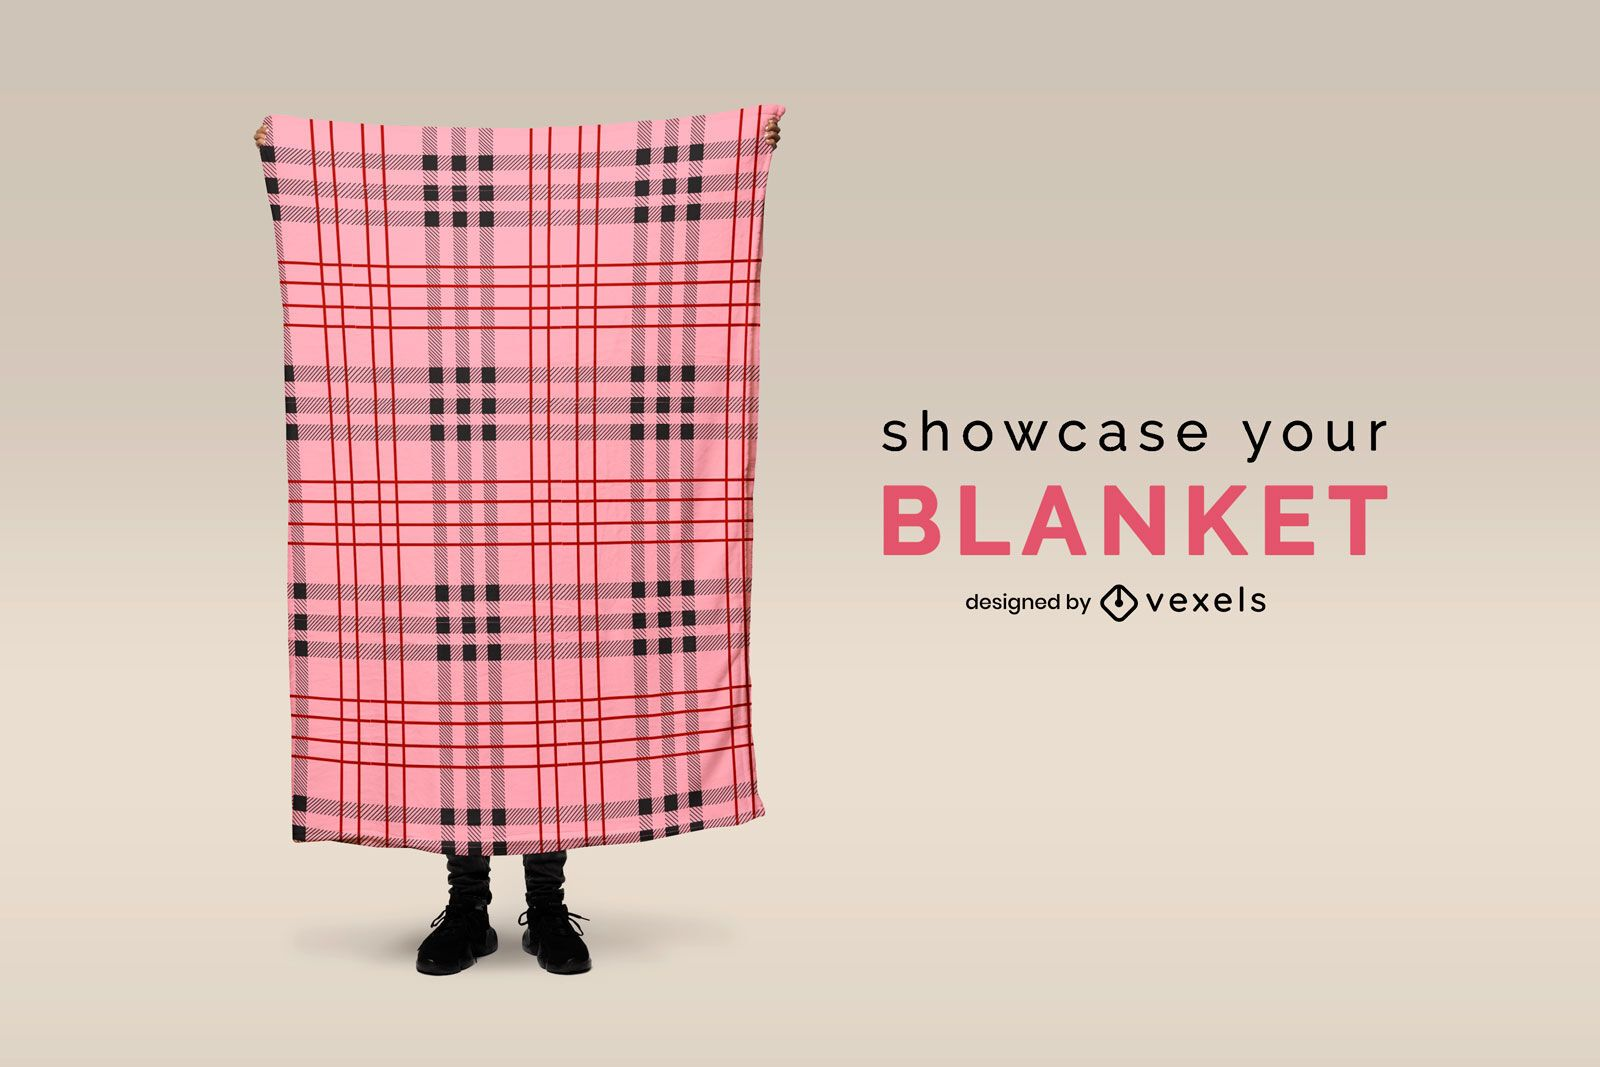 Person holding extended blanket mockup